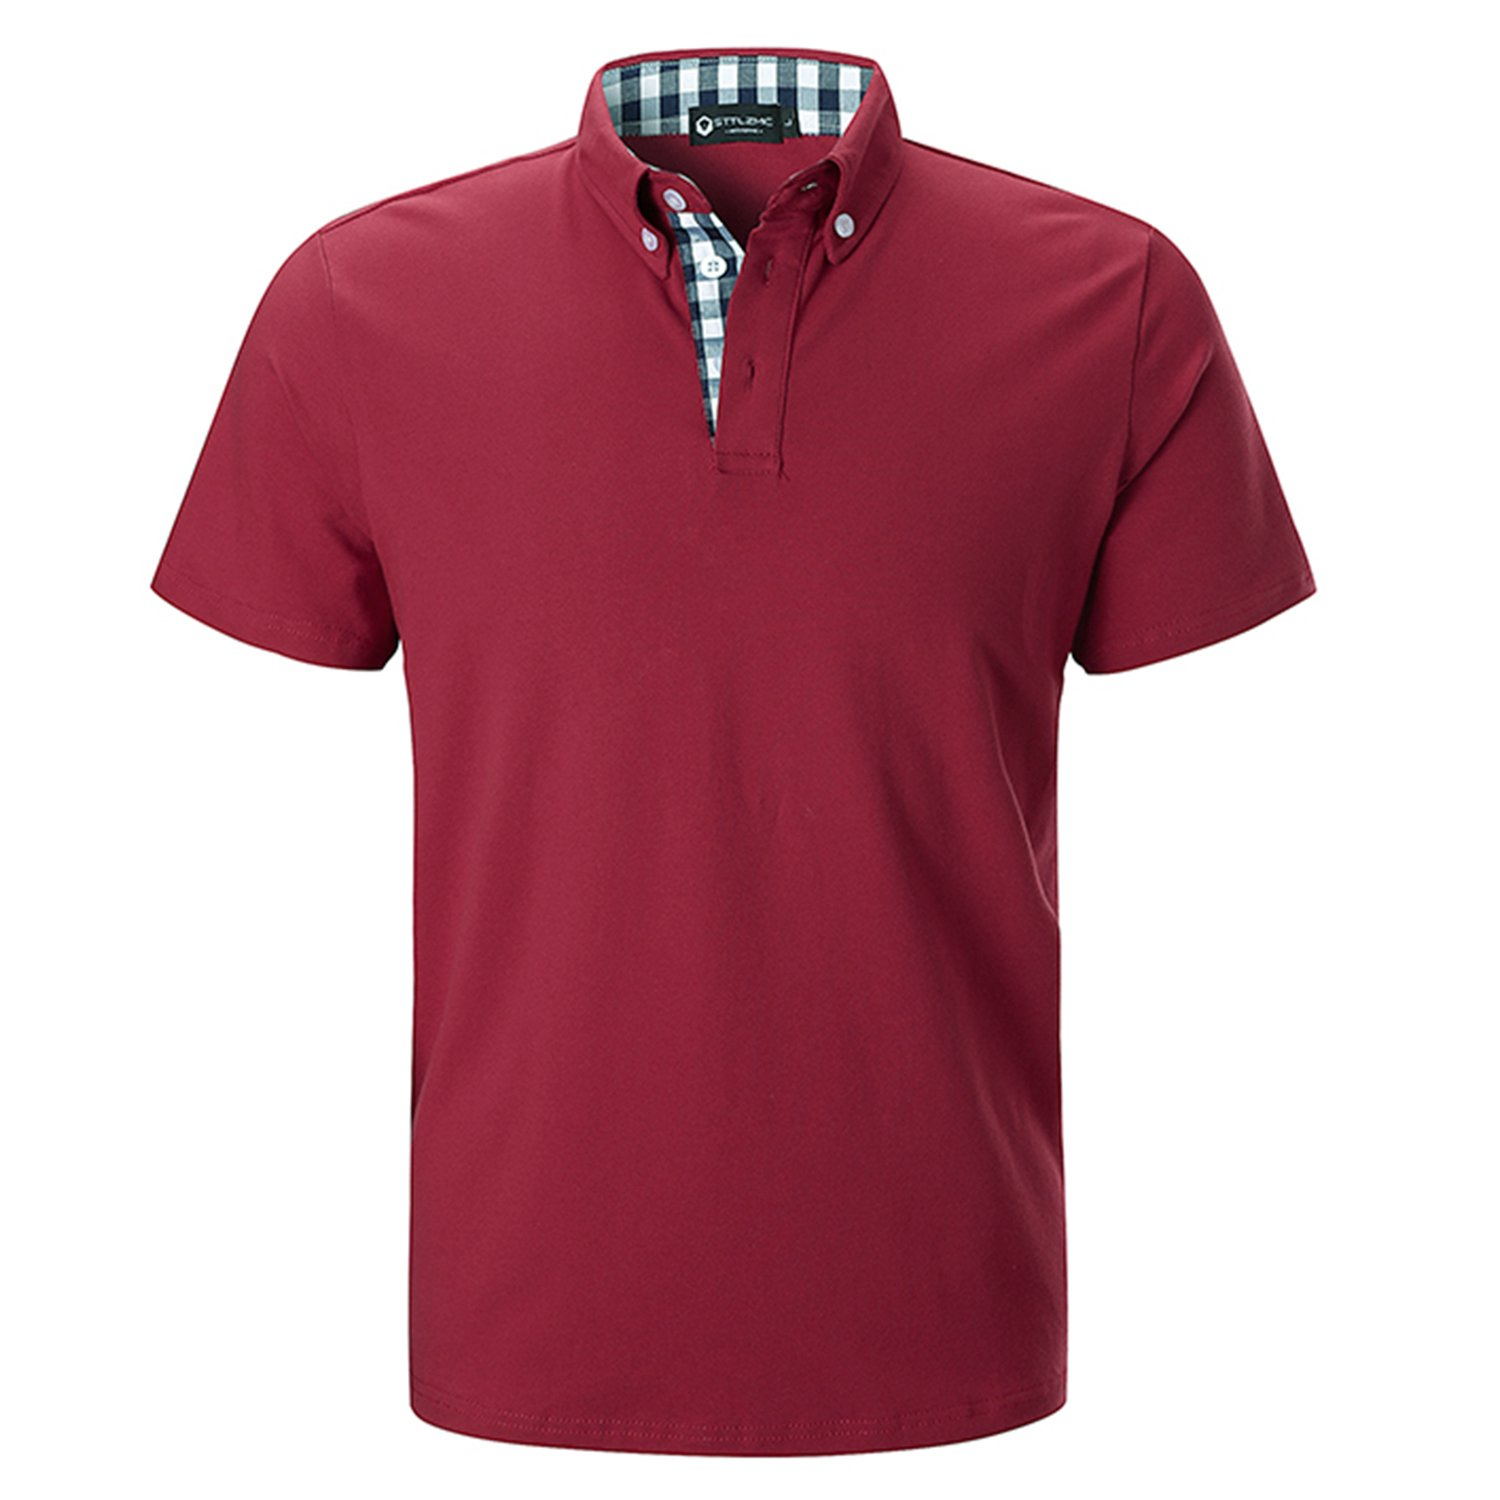 STTLZMC Men's Short Sleeve Polo Shirts Casual Fit Golf Solid Color Tops,Red,Large